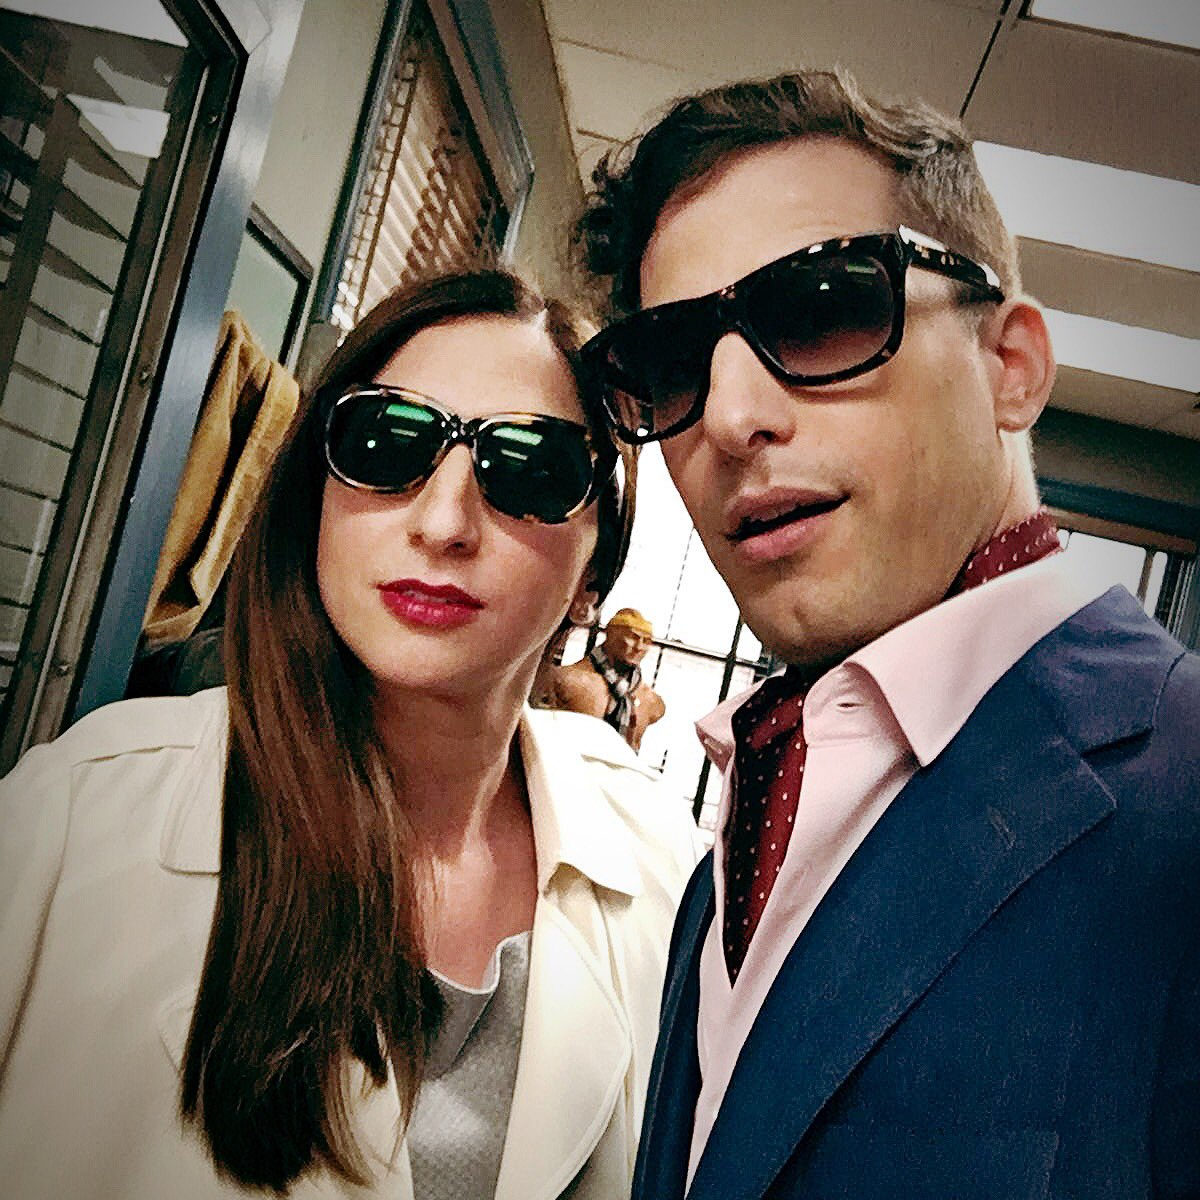 Andy Samberg and his childhood friend, Chelsea Peretti